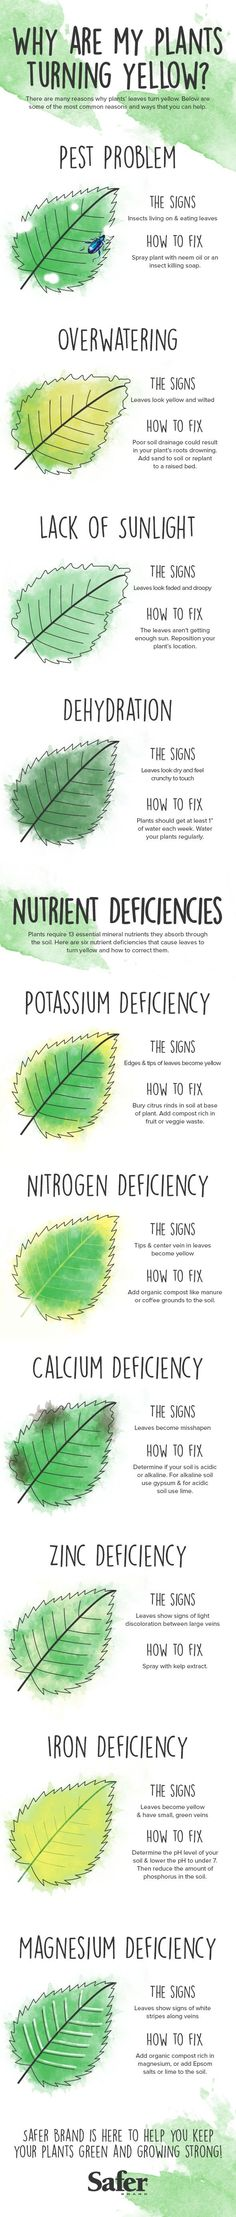 Learn to recognize what causes your plants to look unhealthy! And then solve it the organic garden way :)